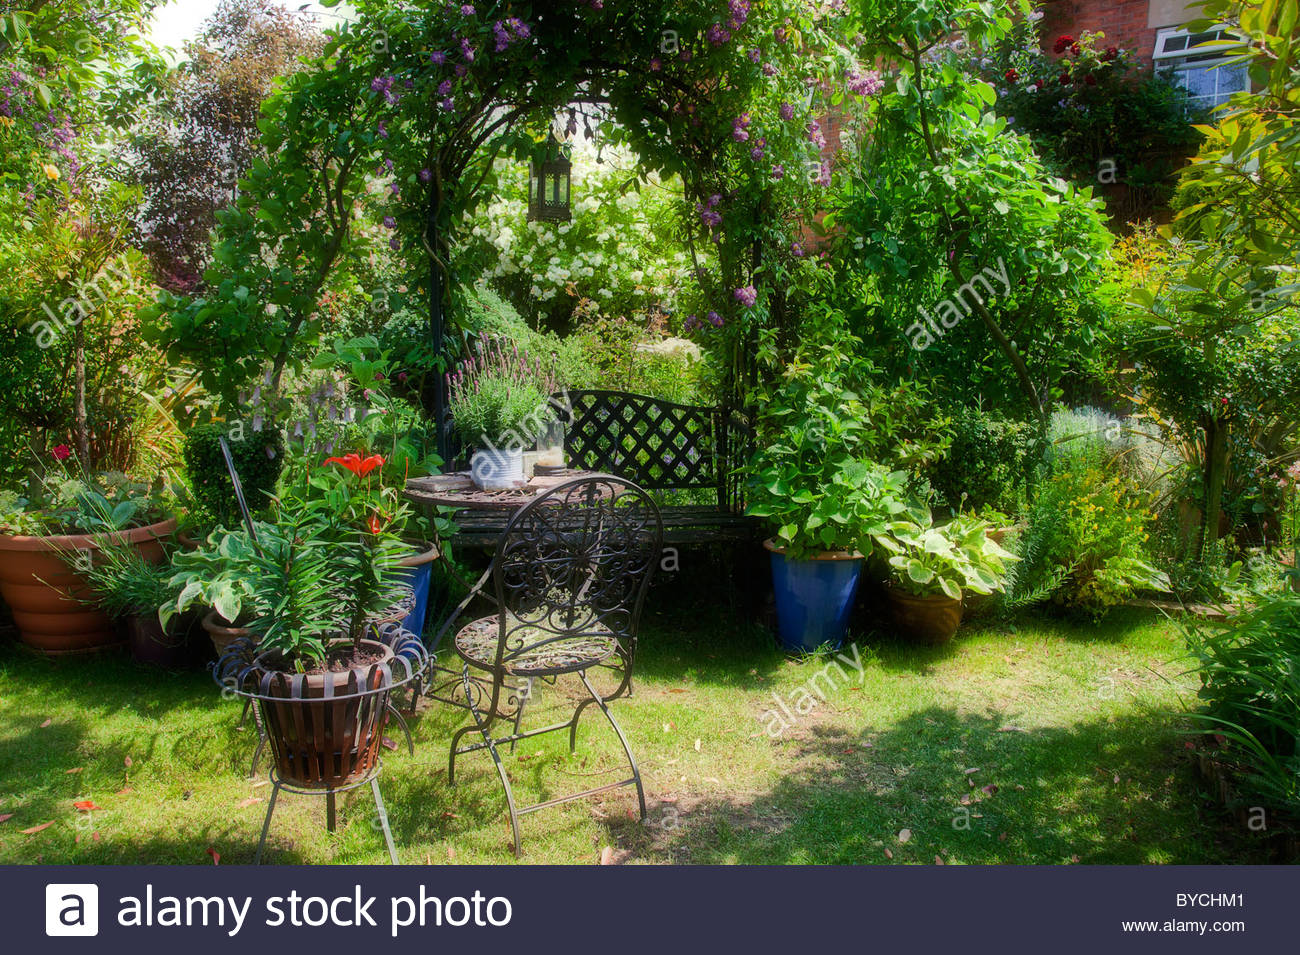 English Country Garden In Summer With Wrought Iron Table